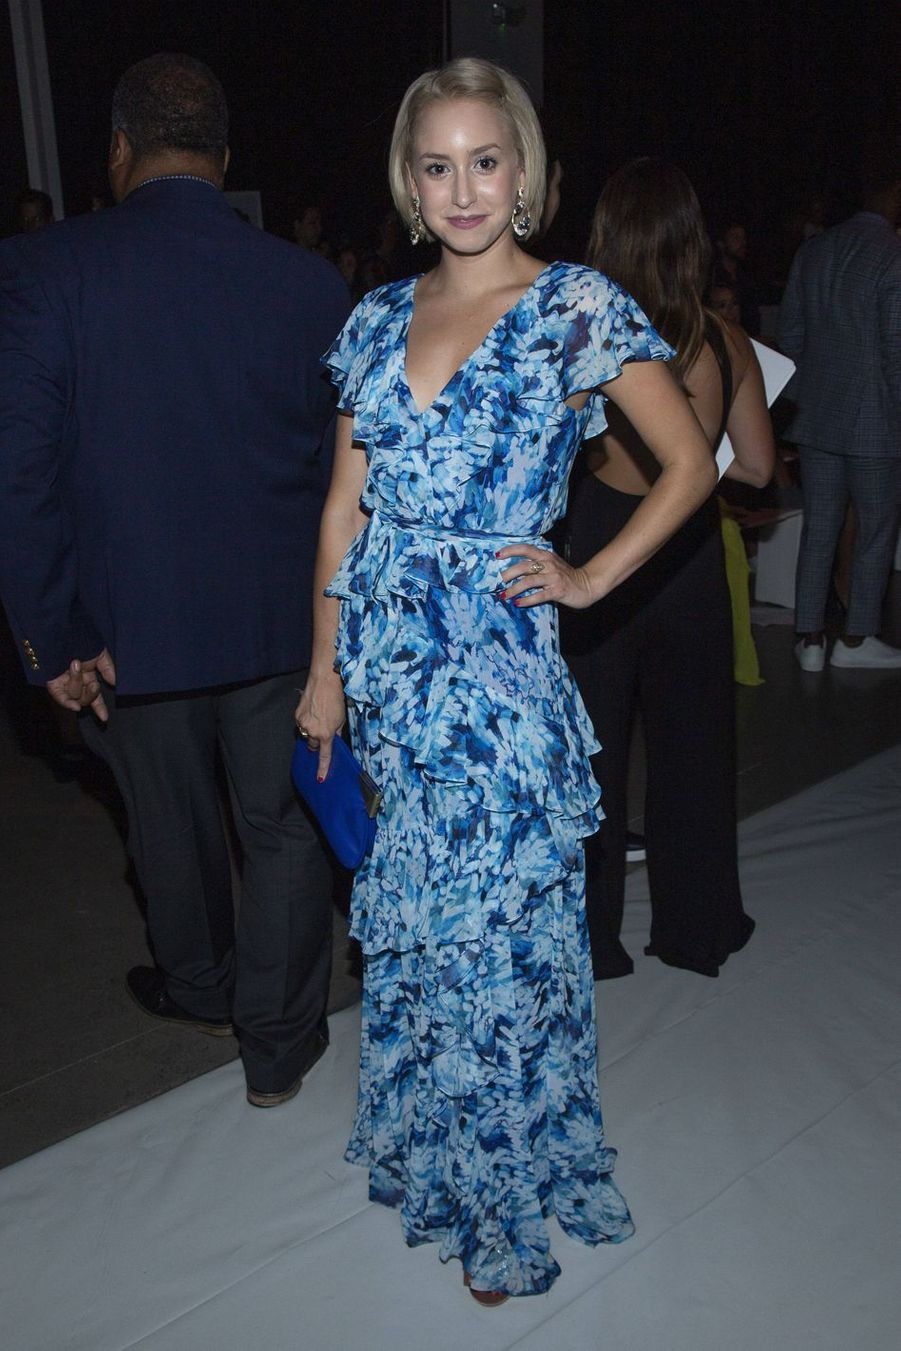 Jazmin Grace Grimaldi au défilé Badgley Mischka à New York le 11 septembre 2019